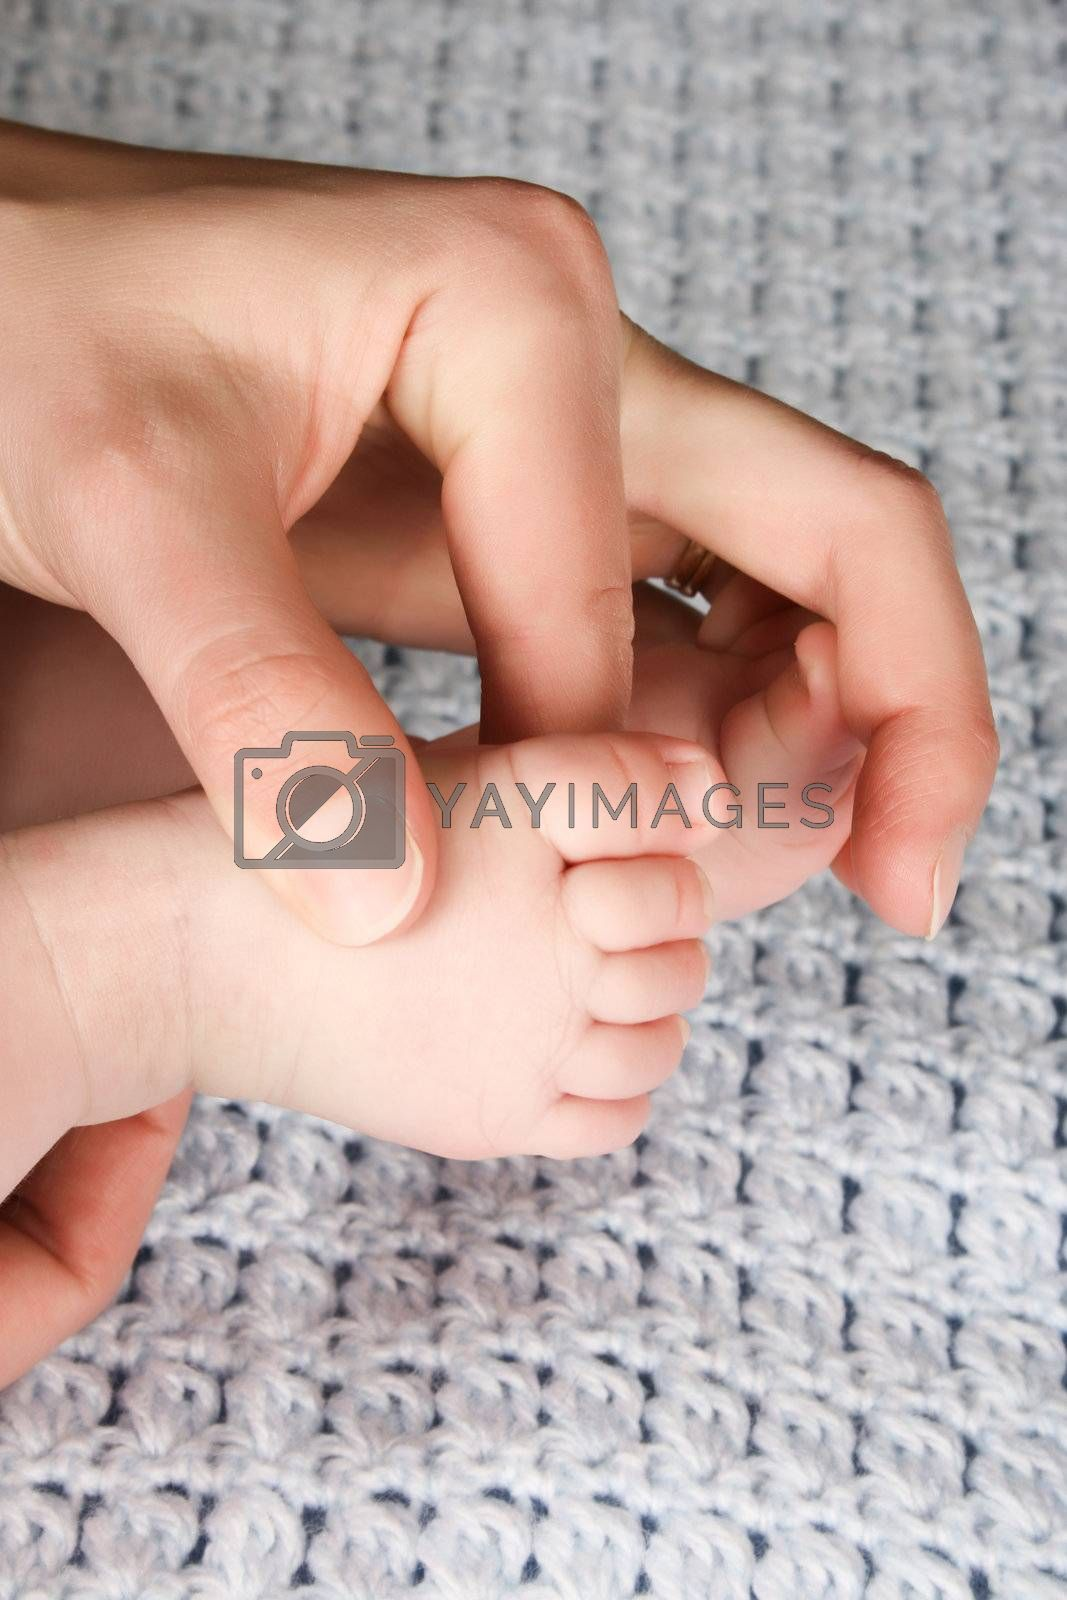 Hands and feet of caucasian mother and baby